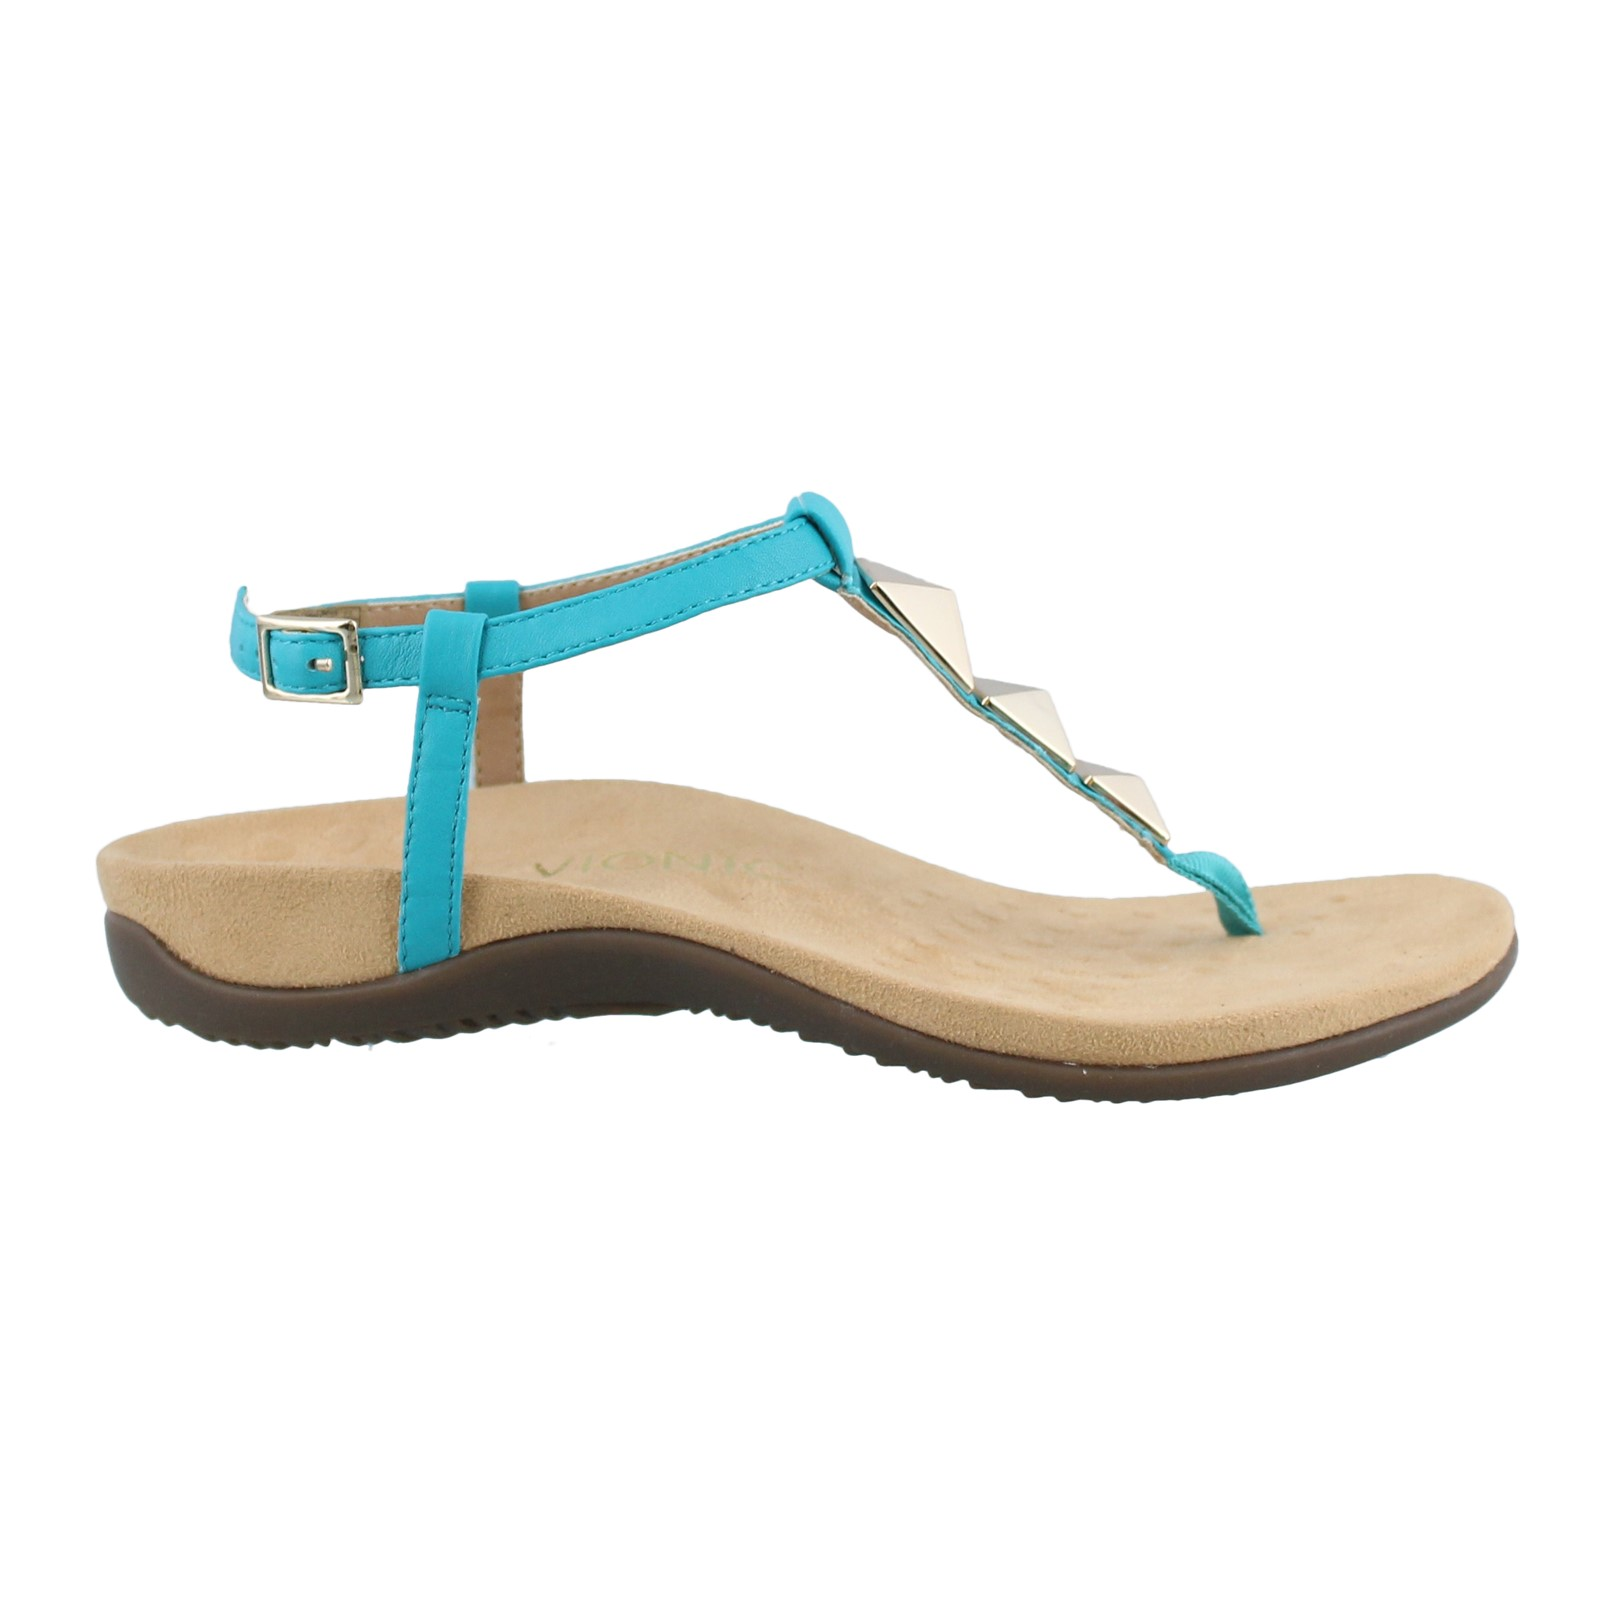 Women's Vionic, Rest Nala Low Heel Sandals